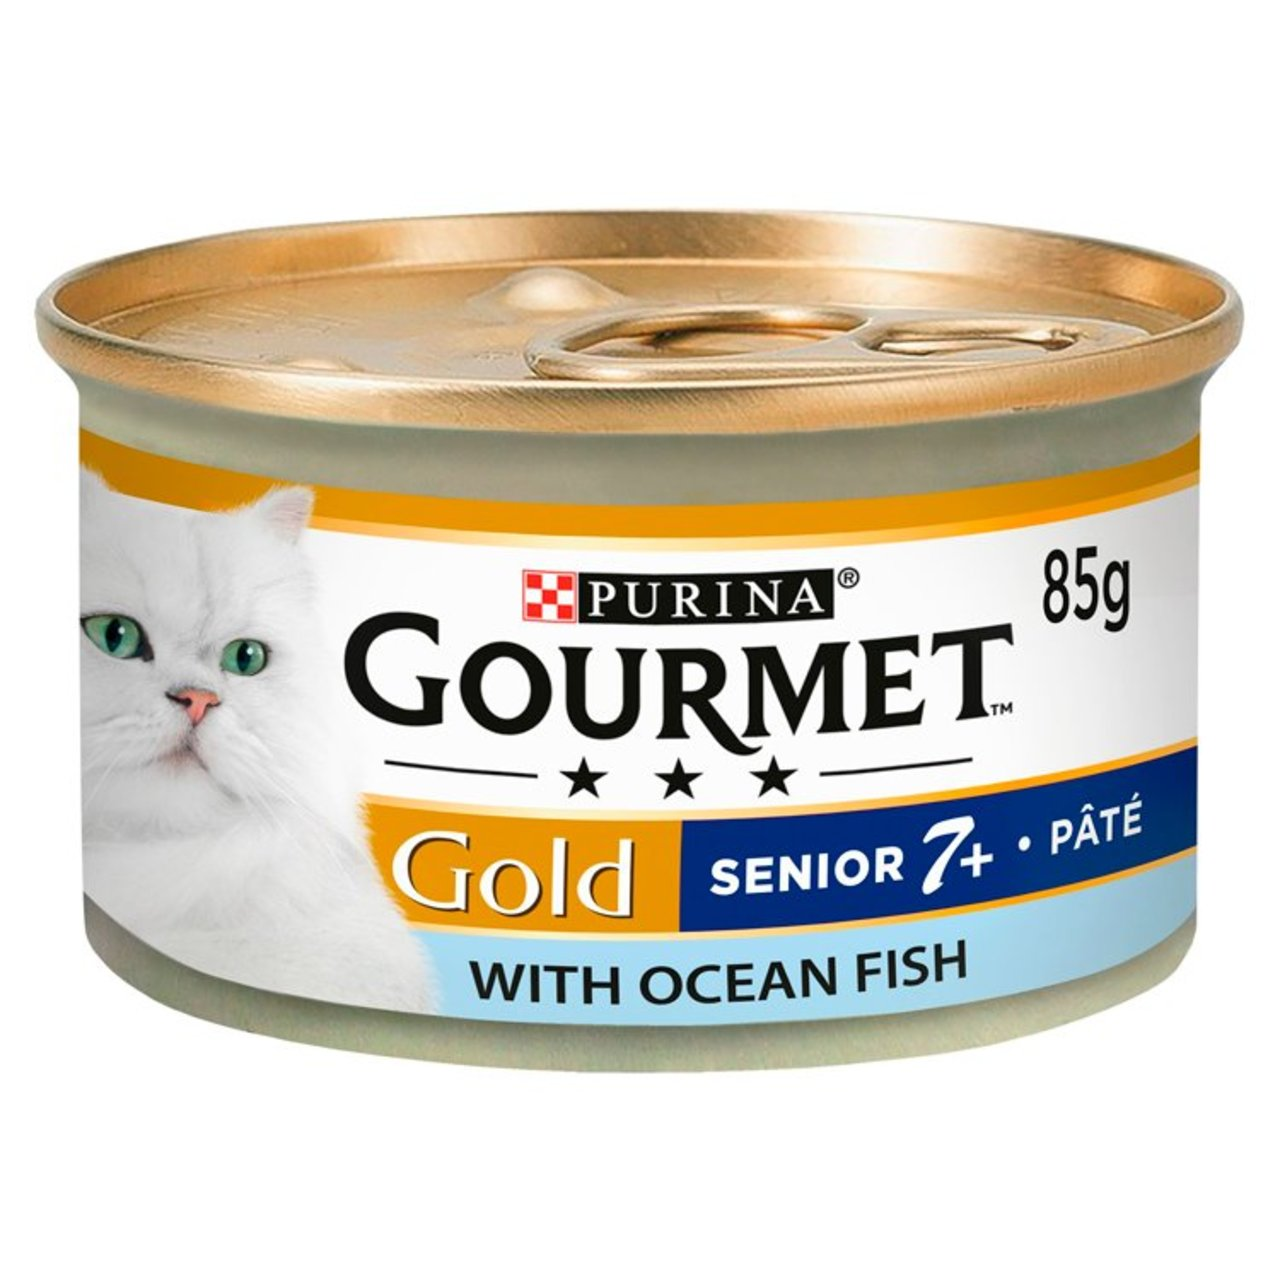 An image of Gourmet Gold 7+ Cat Food Pate with Ocean Fish